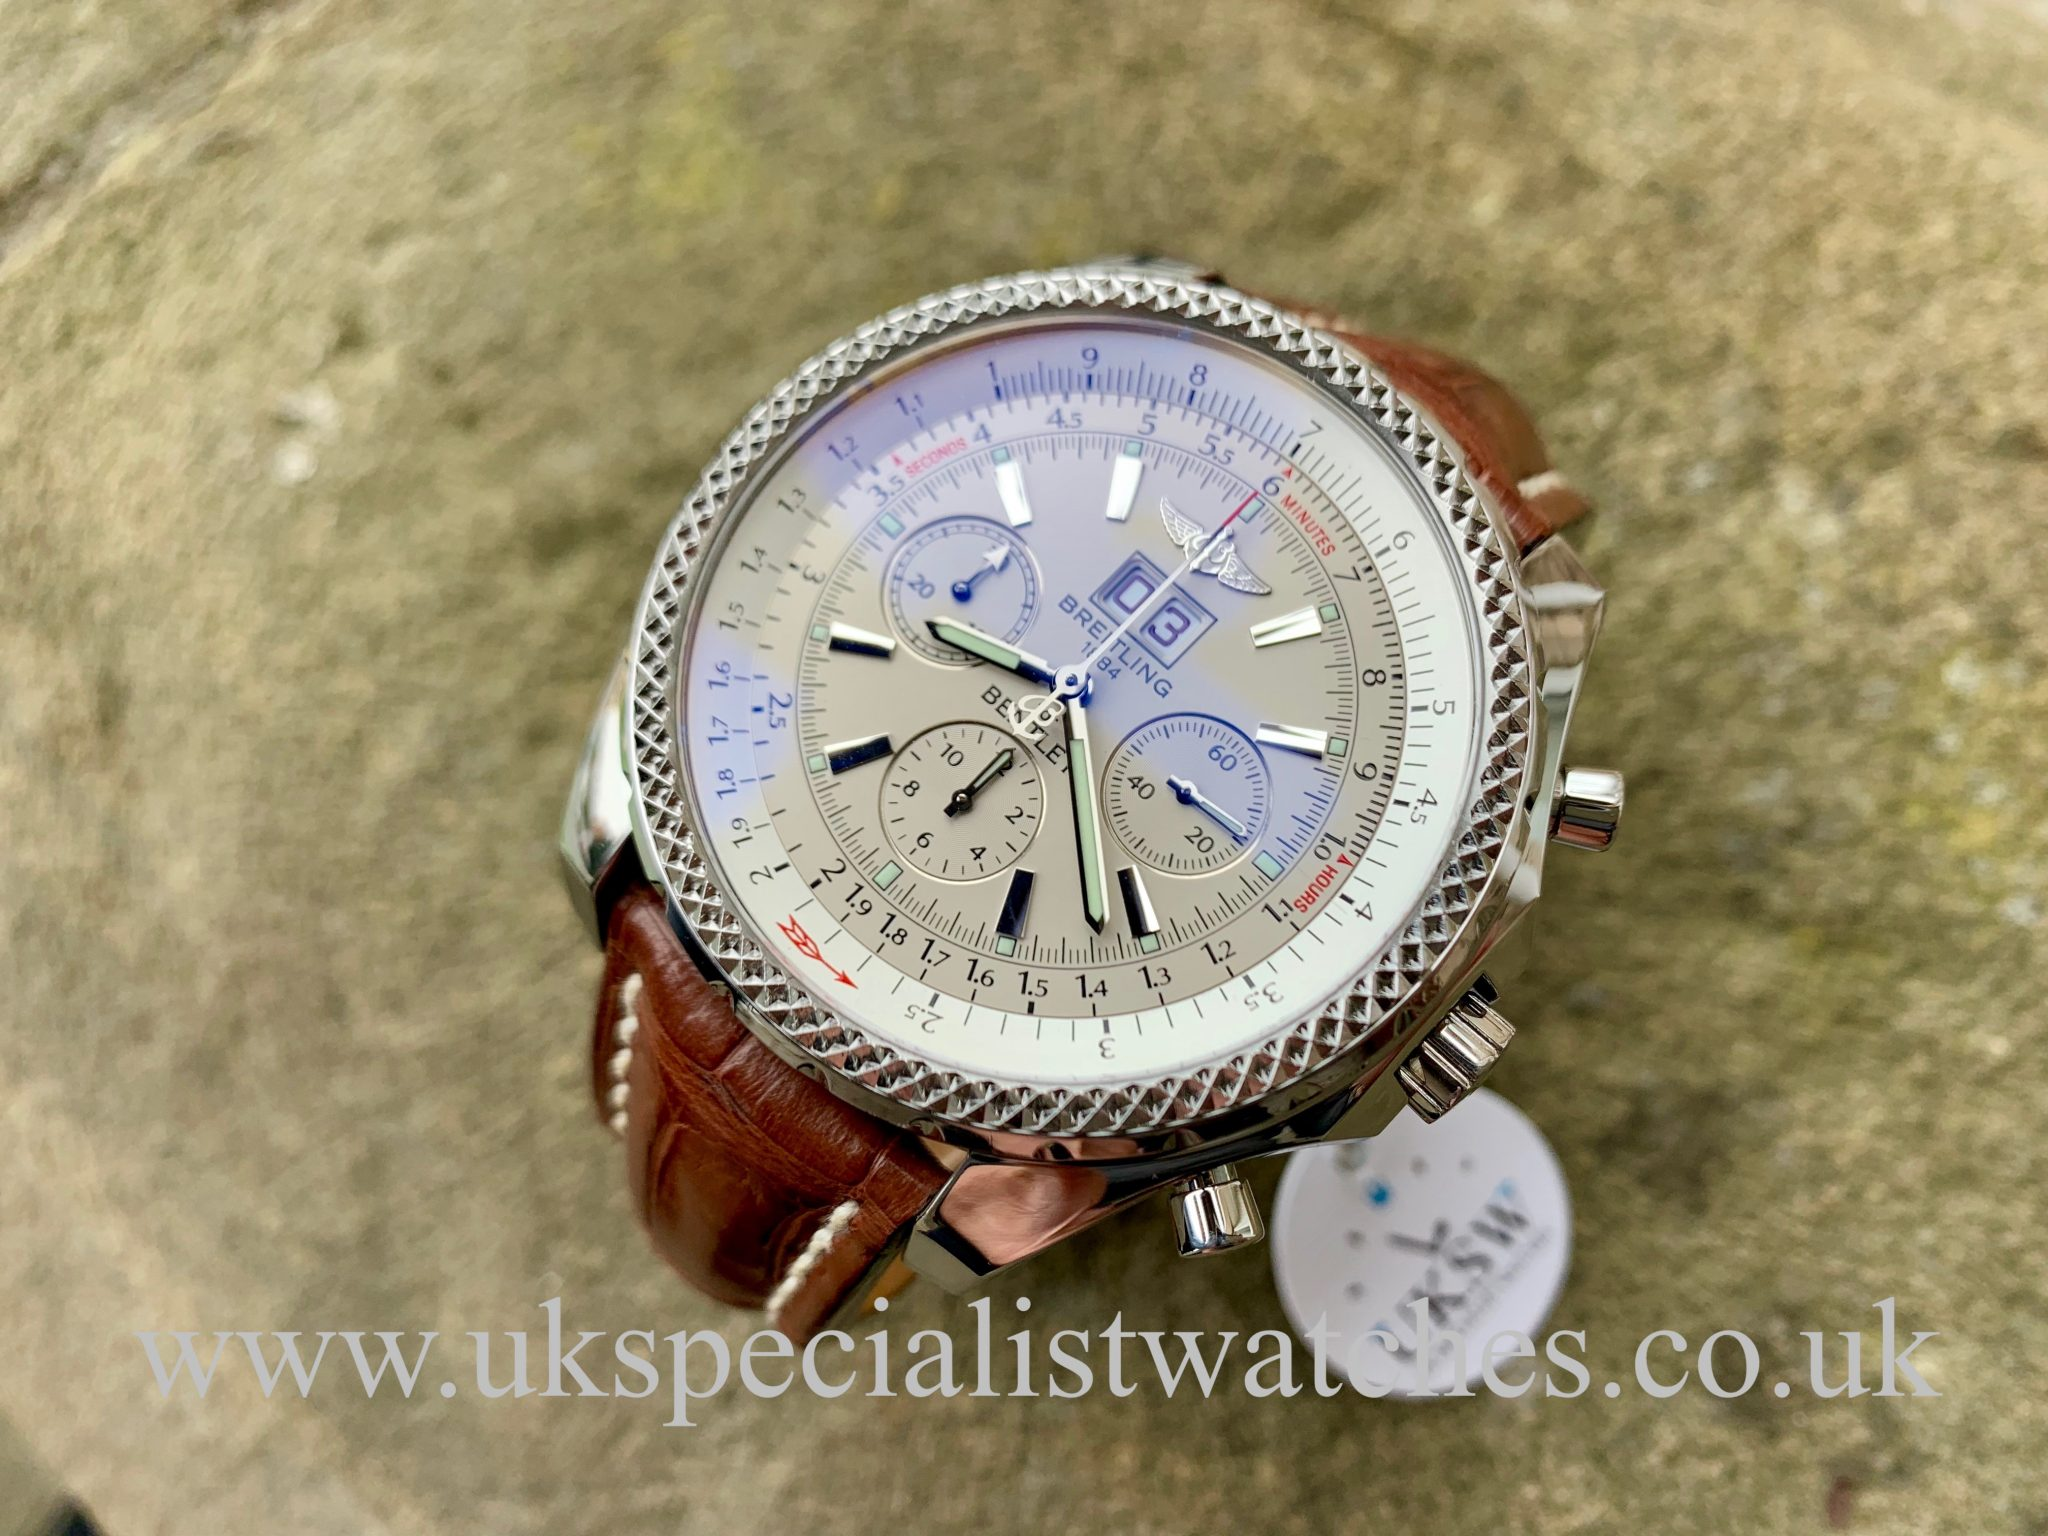 Breitling Bentley 6 75 Chronograph Stainless Steel A44362 Uk Specialist Watches